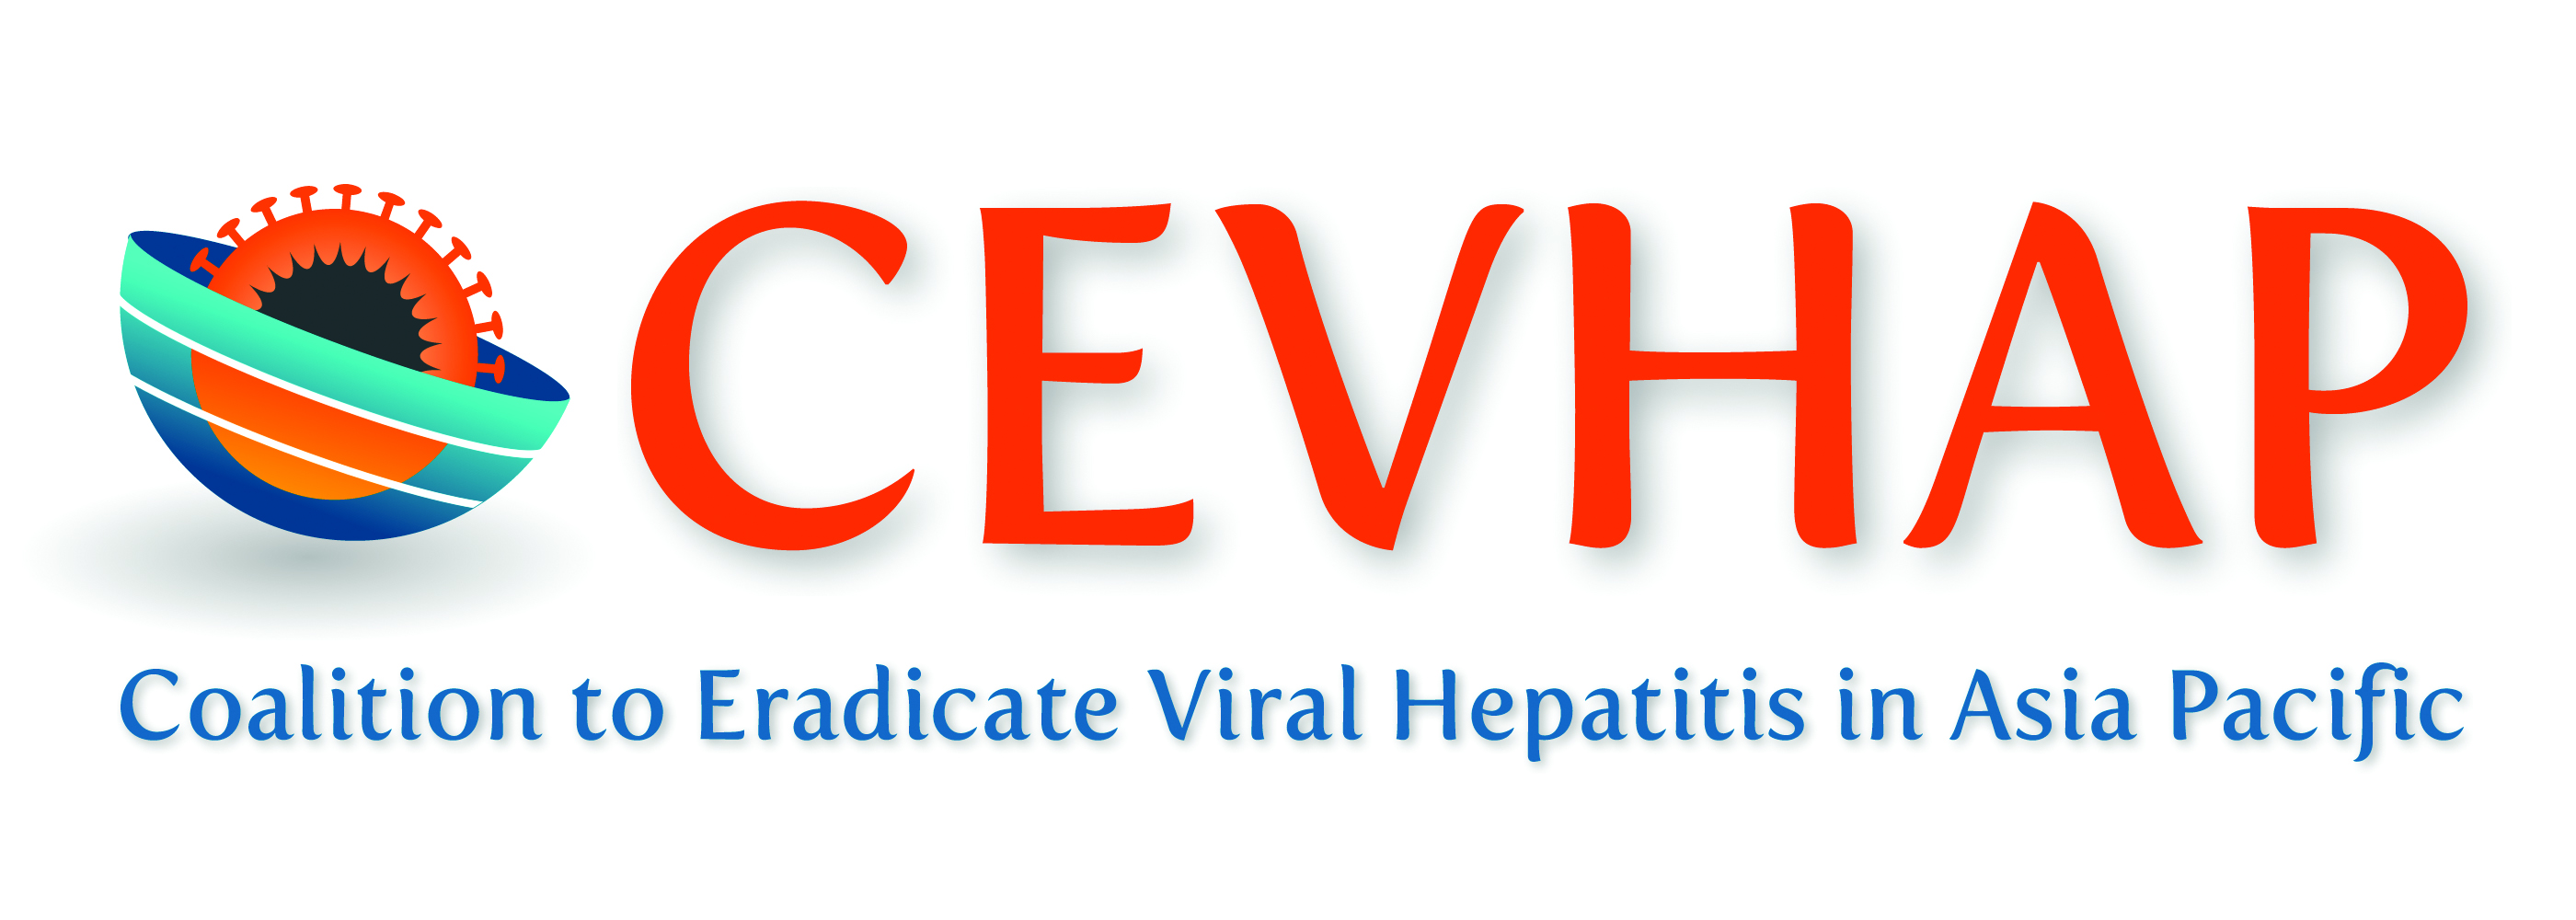 Coalition to Eradicate Viral Hepatitis in Asia Pacific